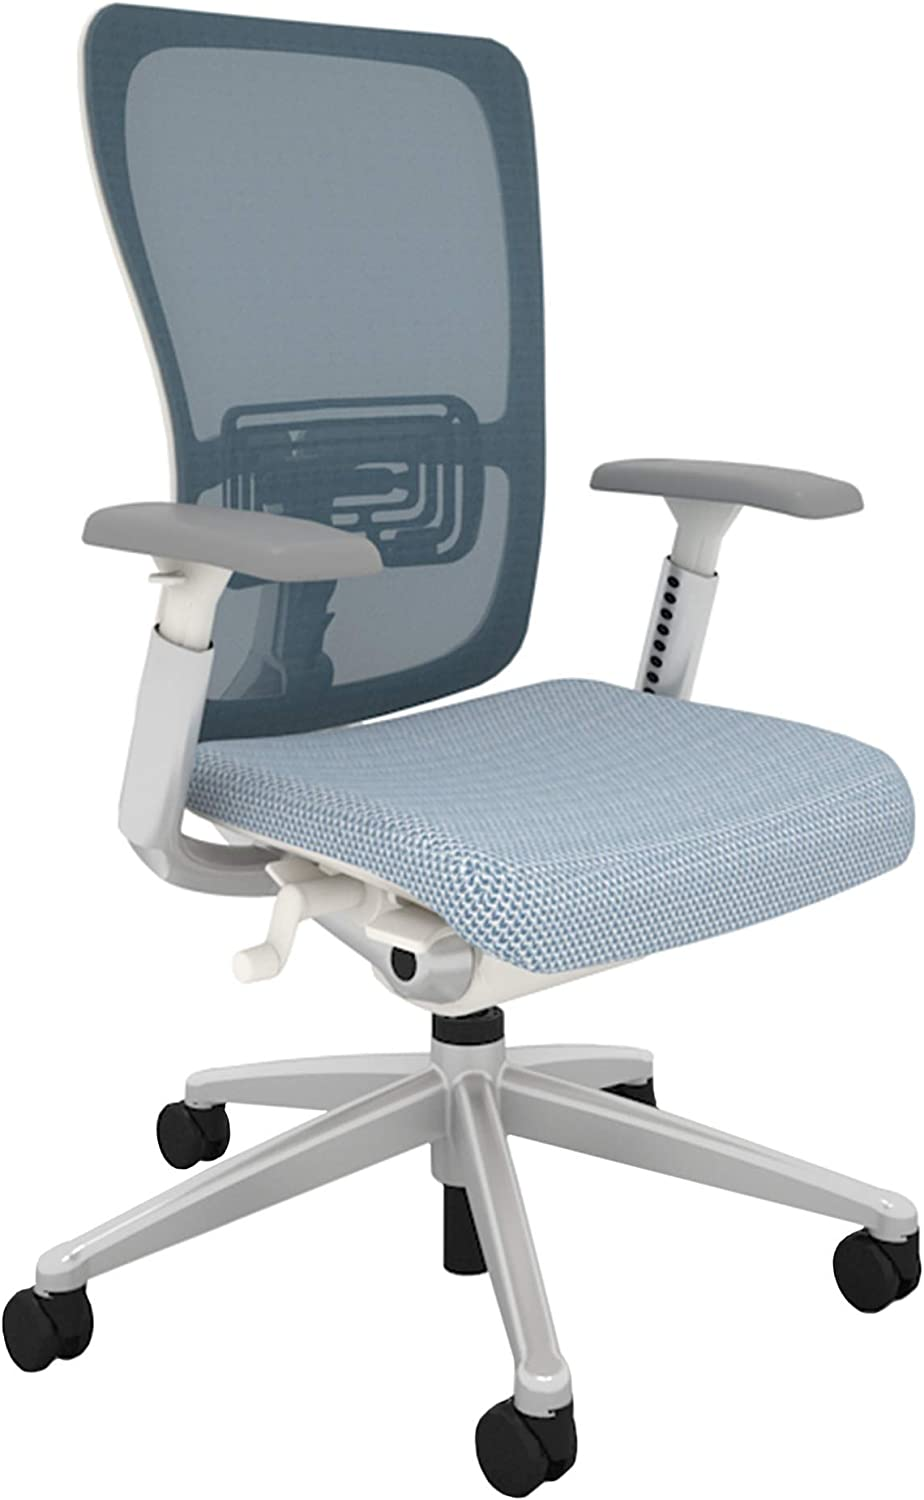 Haworth Zody High Performance Office Chair with Ergonomic Adjustments and Flexible Mesh Back, Blue